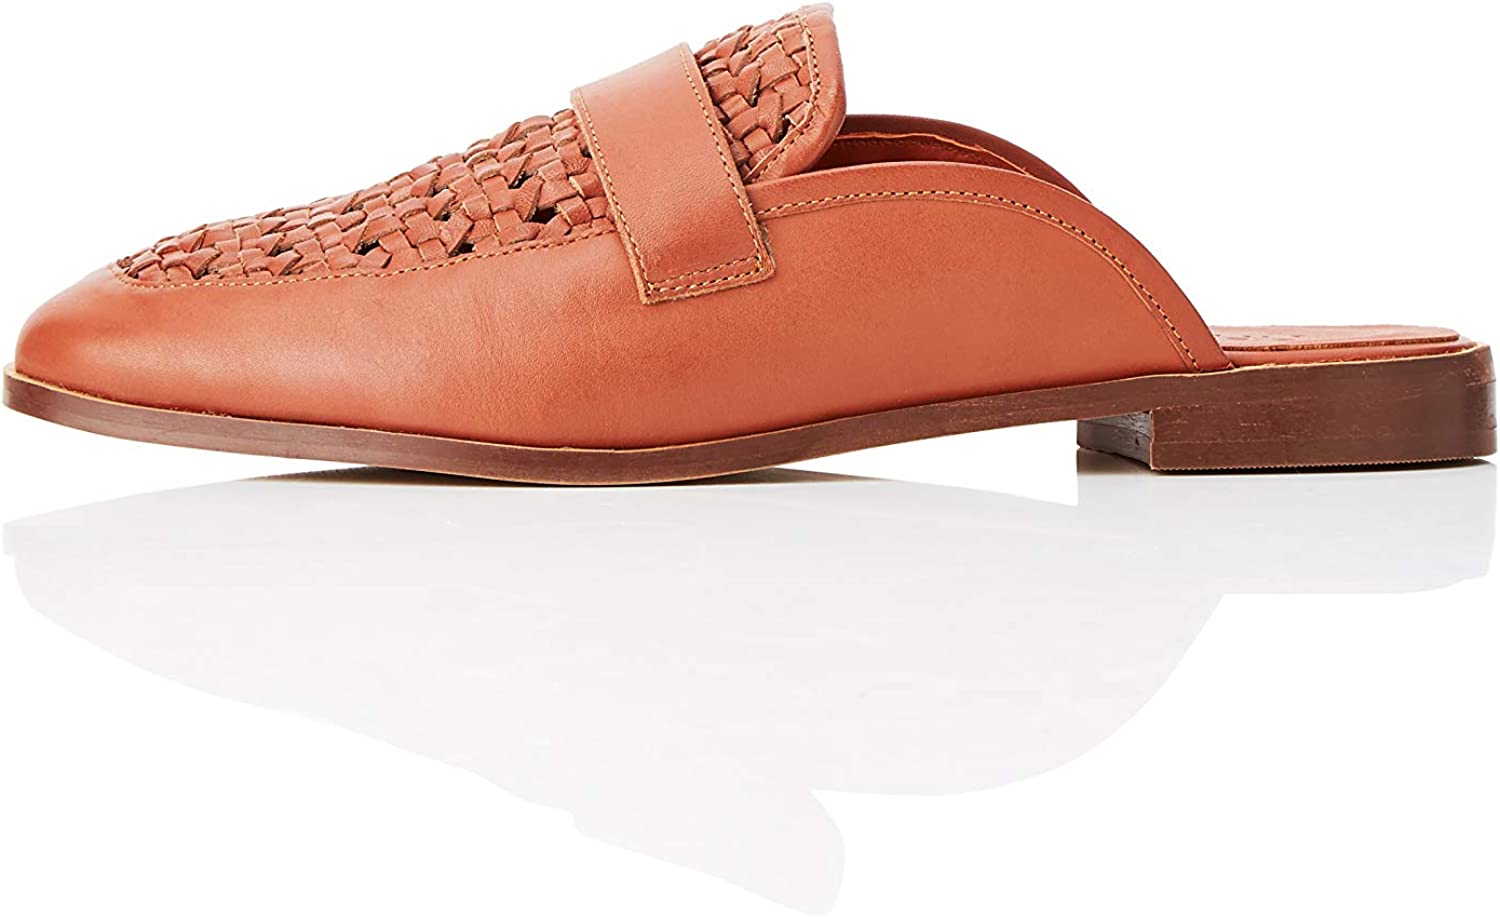 Amazon Brand - find. Woven Loafer Max 42% OFF Backless Women's trust